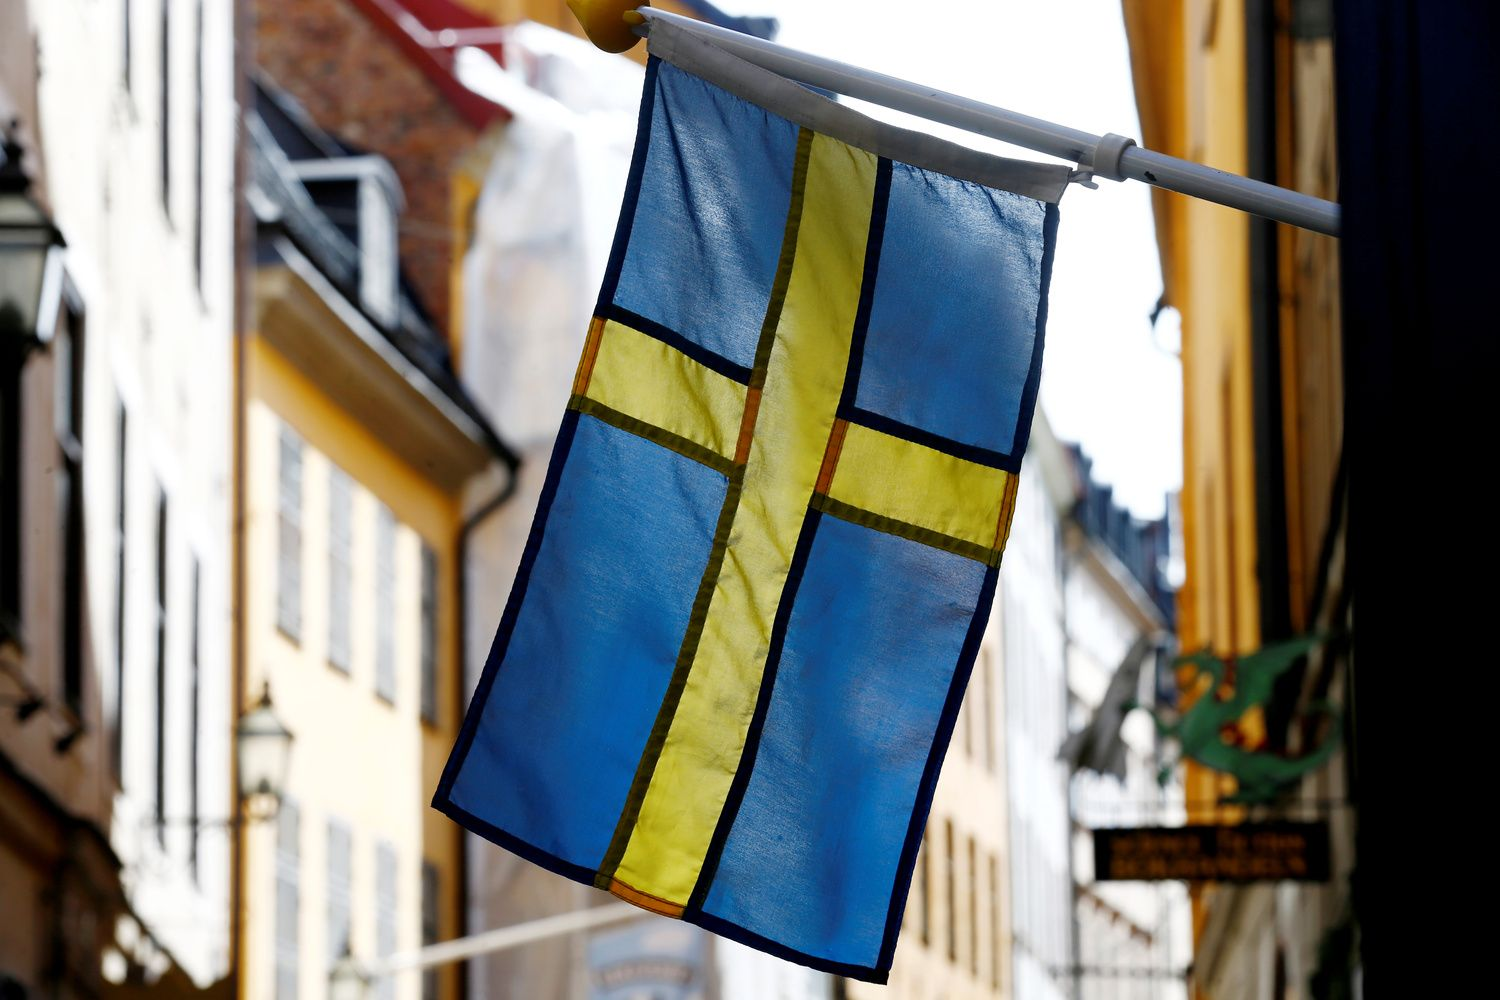 Warning Signs Are Mounting for Sweden's Once-Hot Housing Market